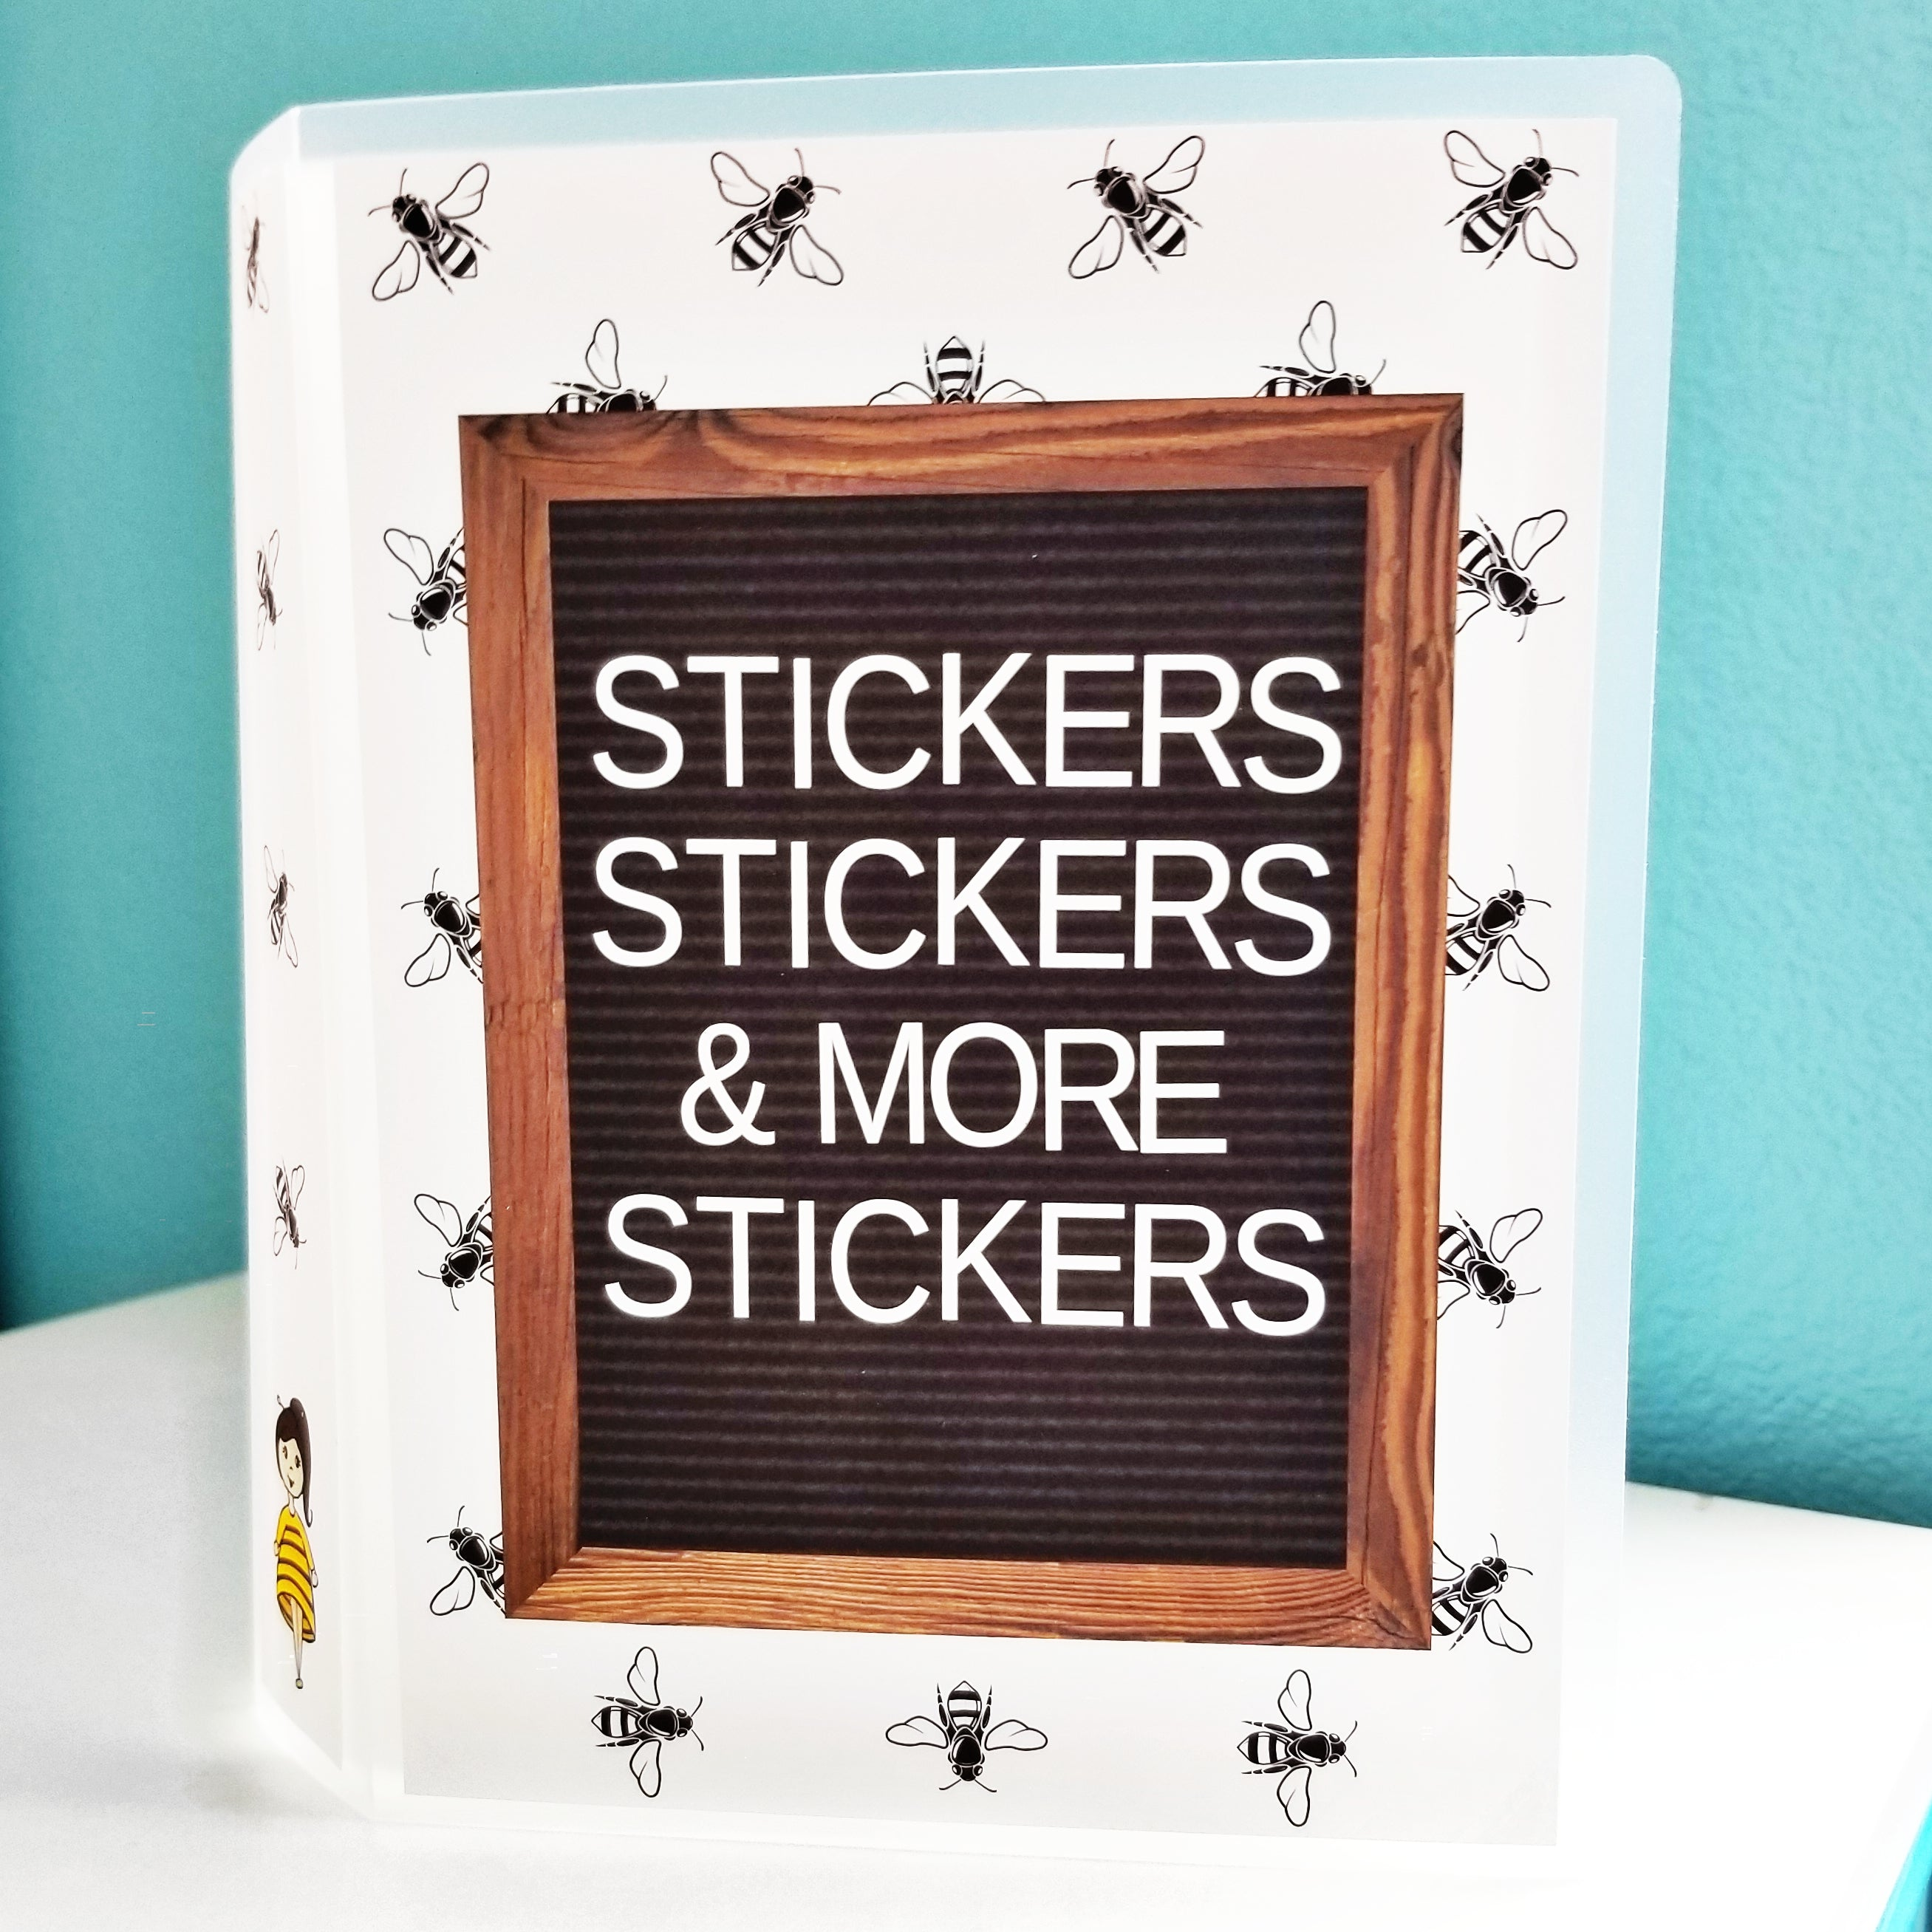 STICKERS, STICKERS, & MORE STICKERS Album